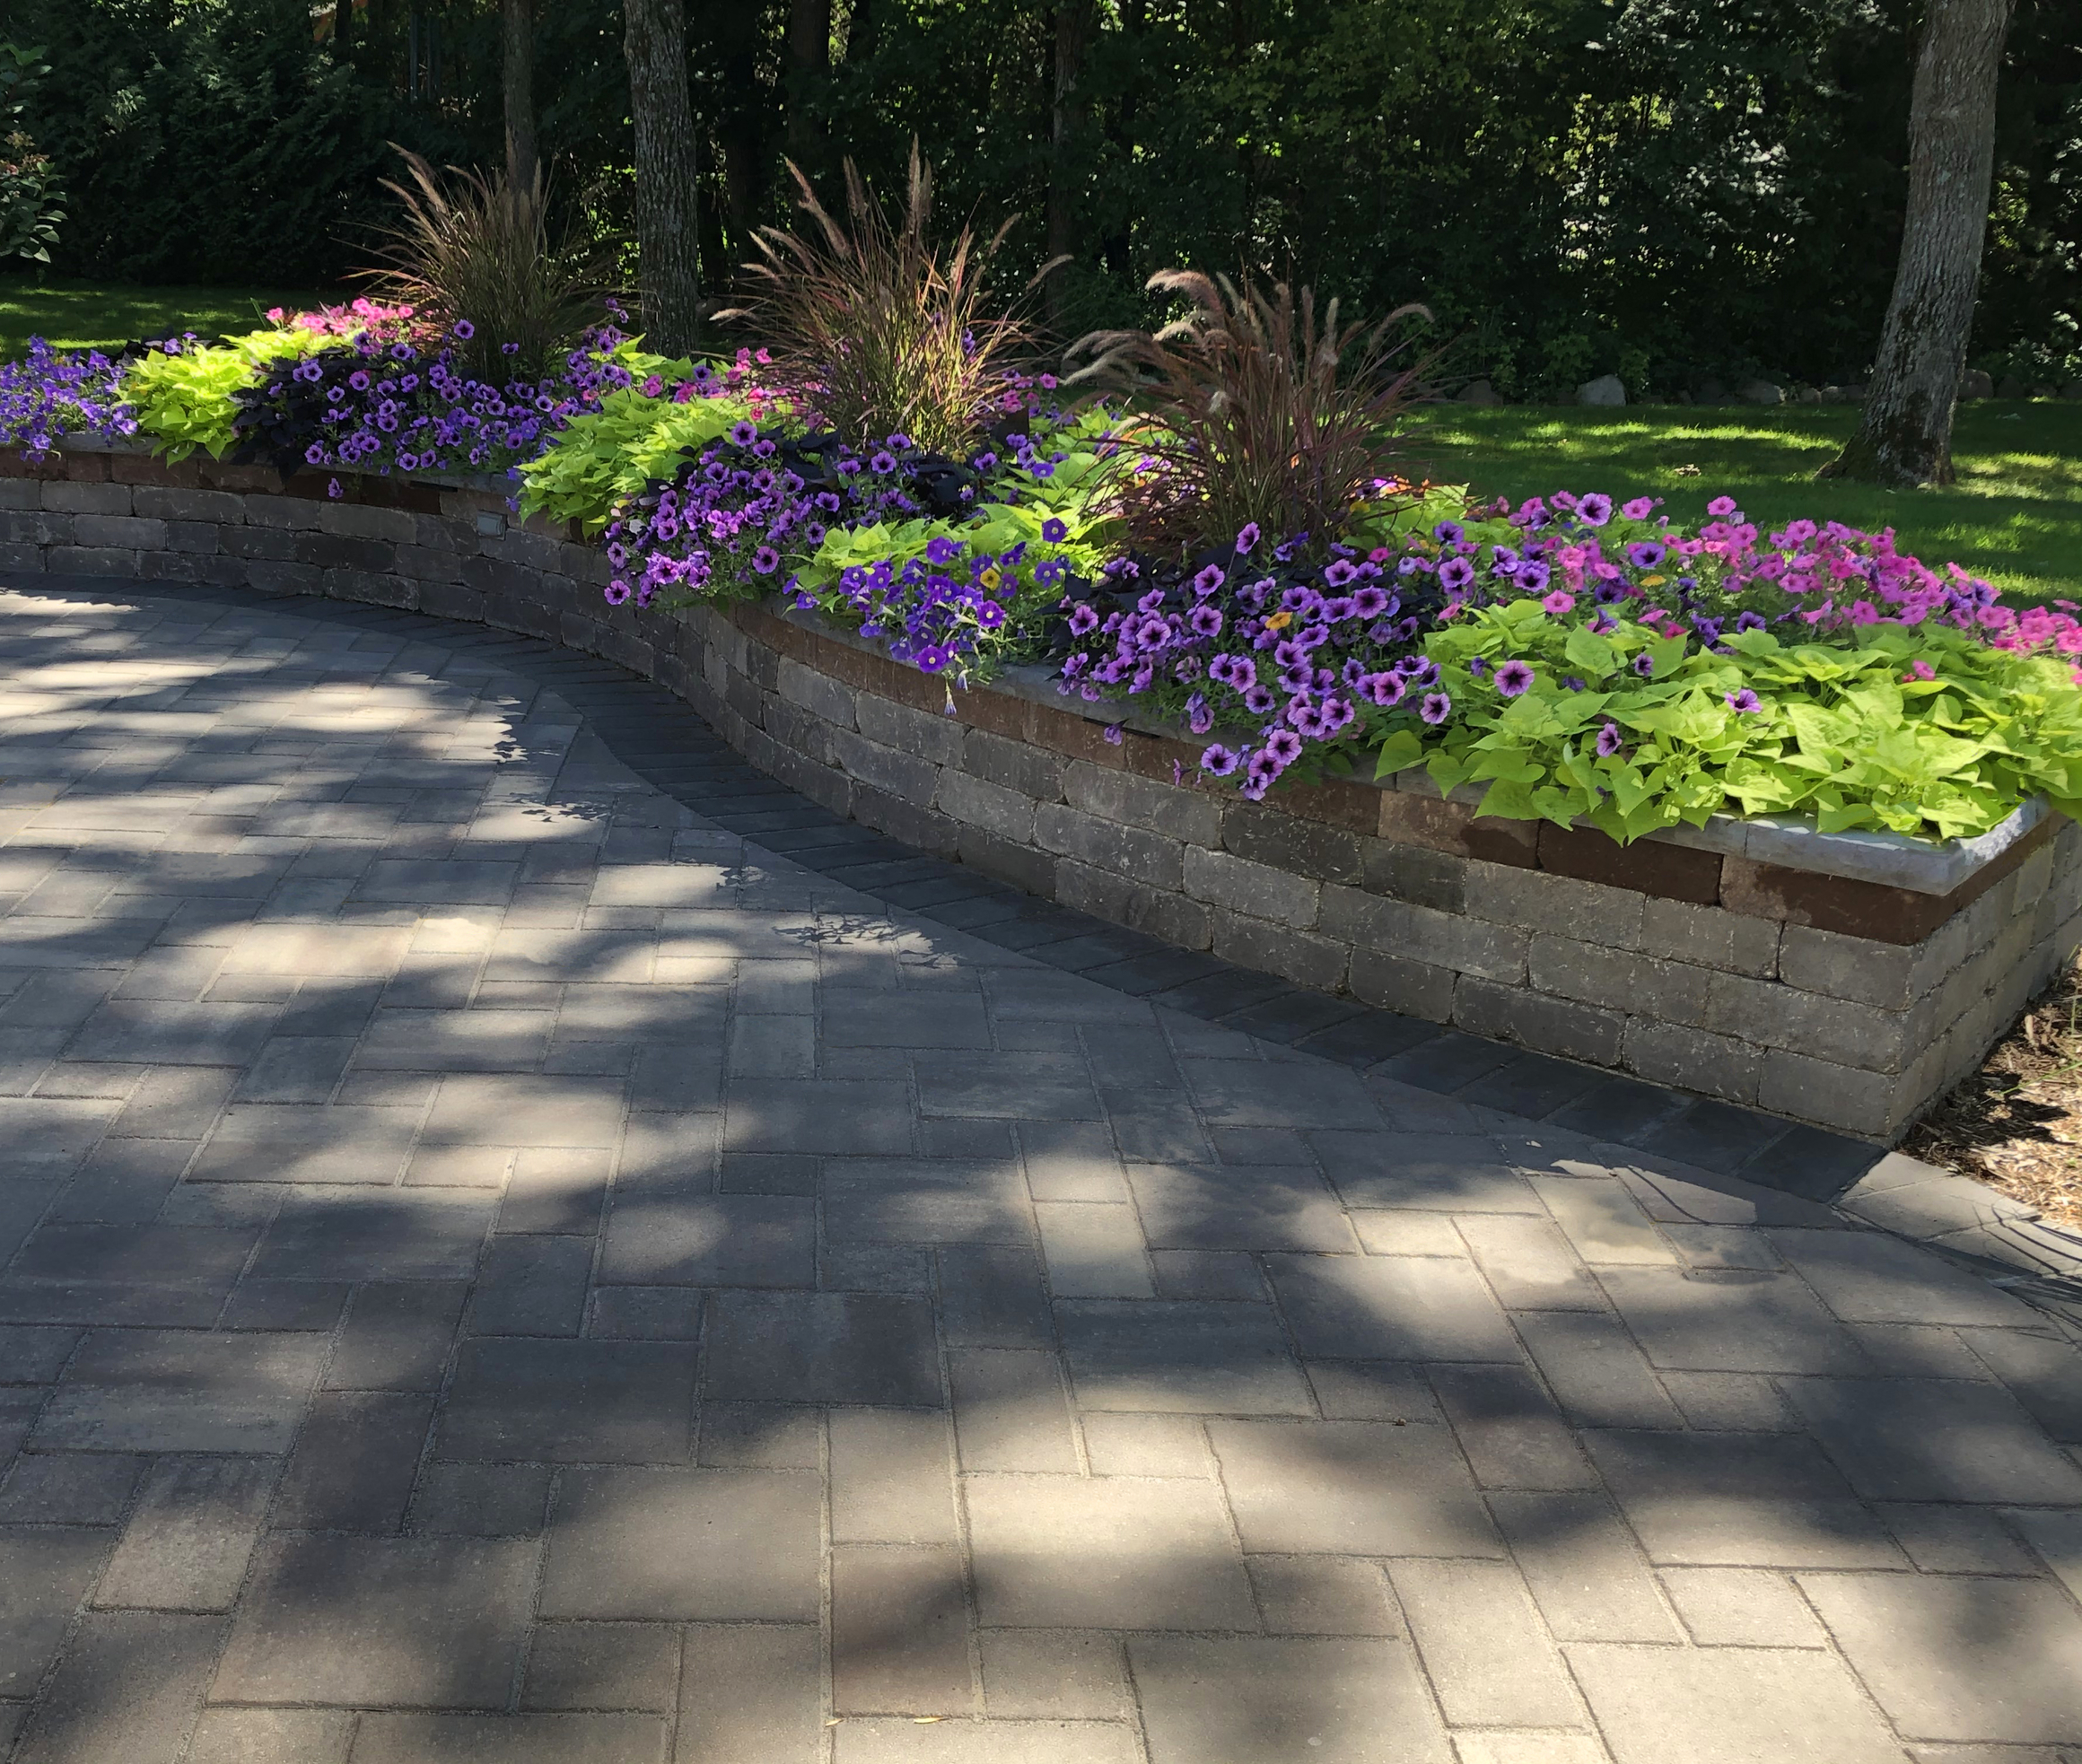 Taking Care of Your New Landscaping